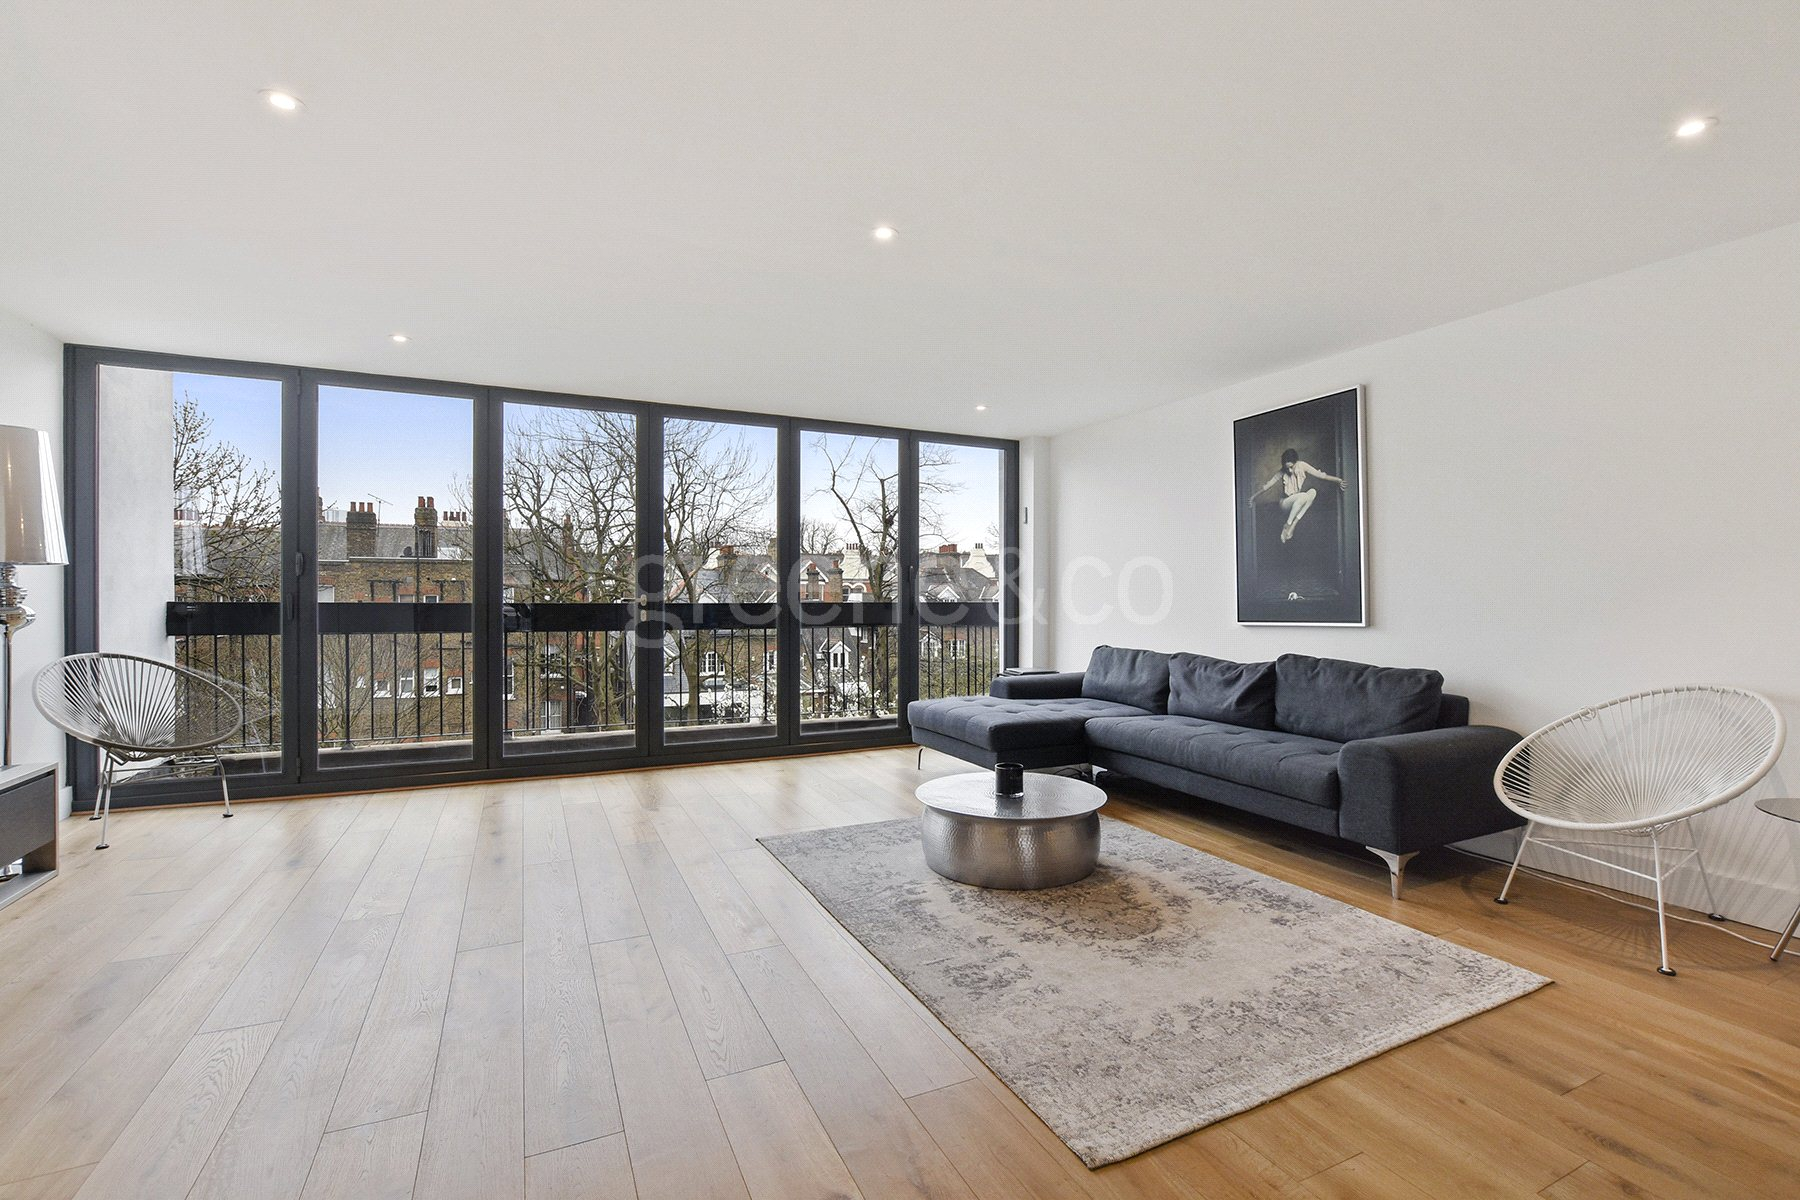 3 Bedrooms House for sale in Haverstock Hill, Belsize Park, London, NW3